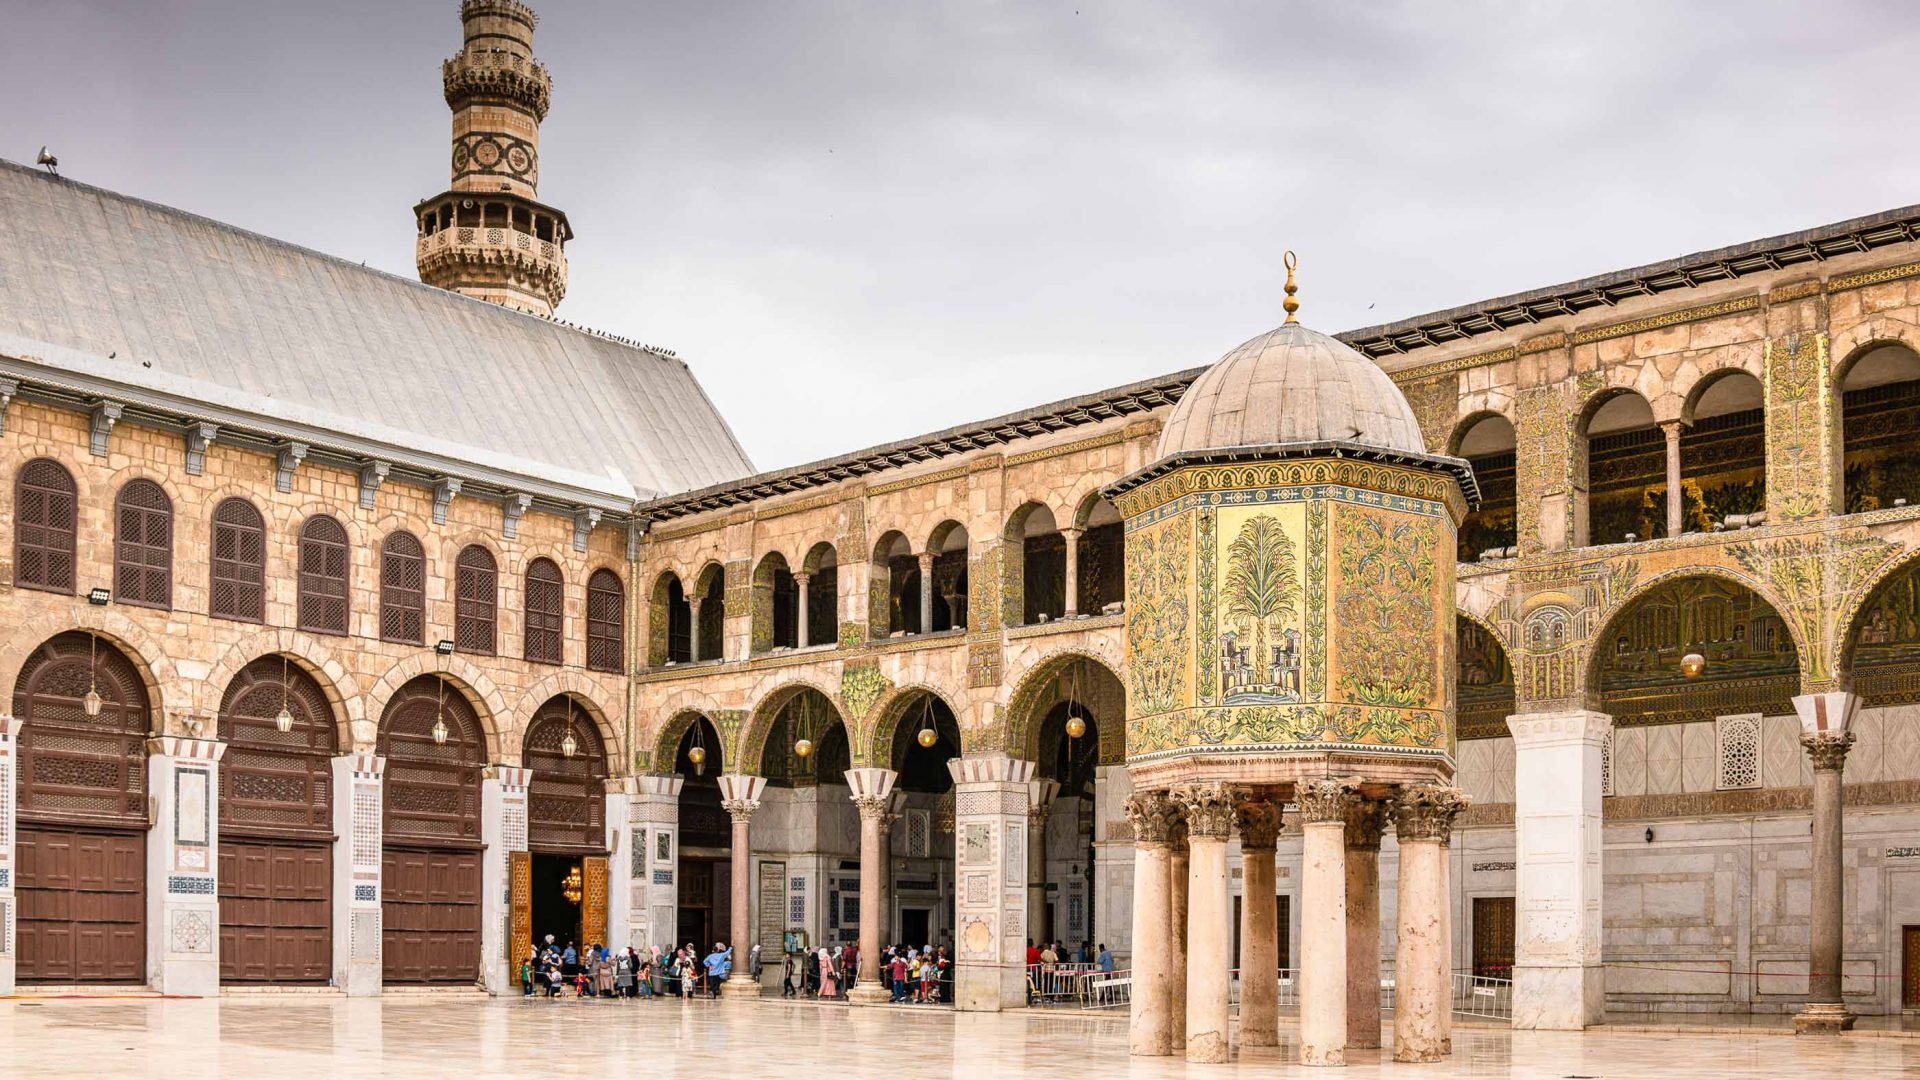 The Umayyad Mosque in Damascus was virtually unscathed by the conflict.